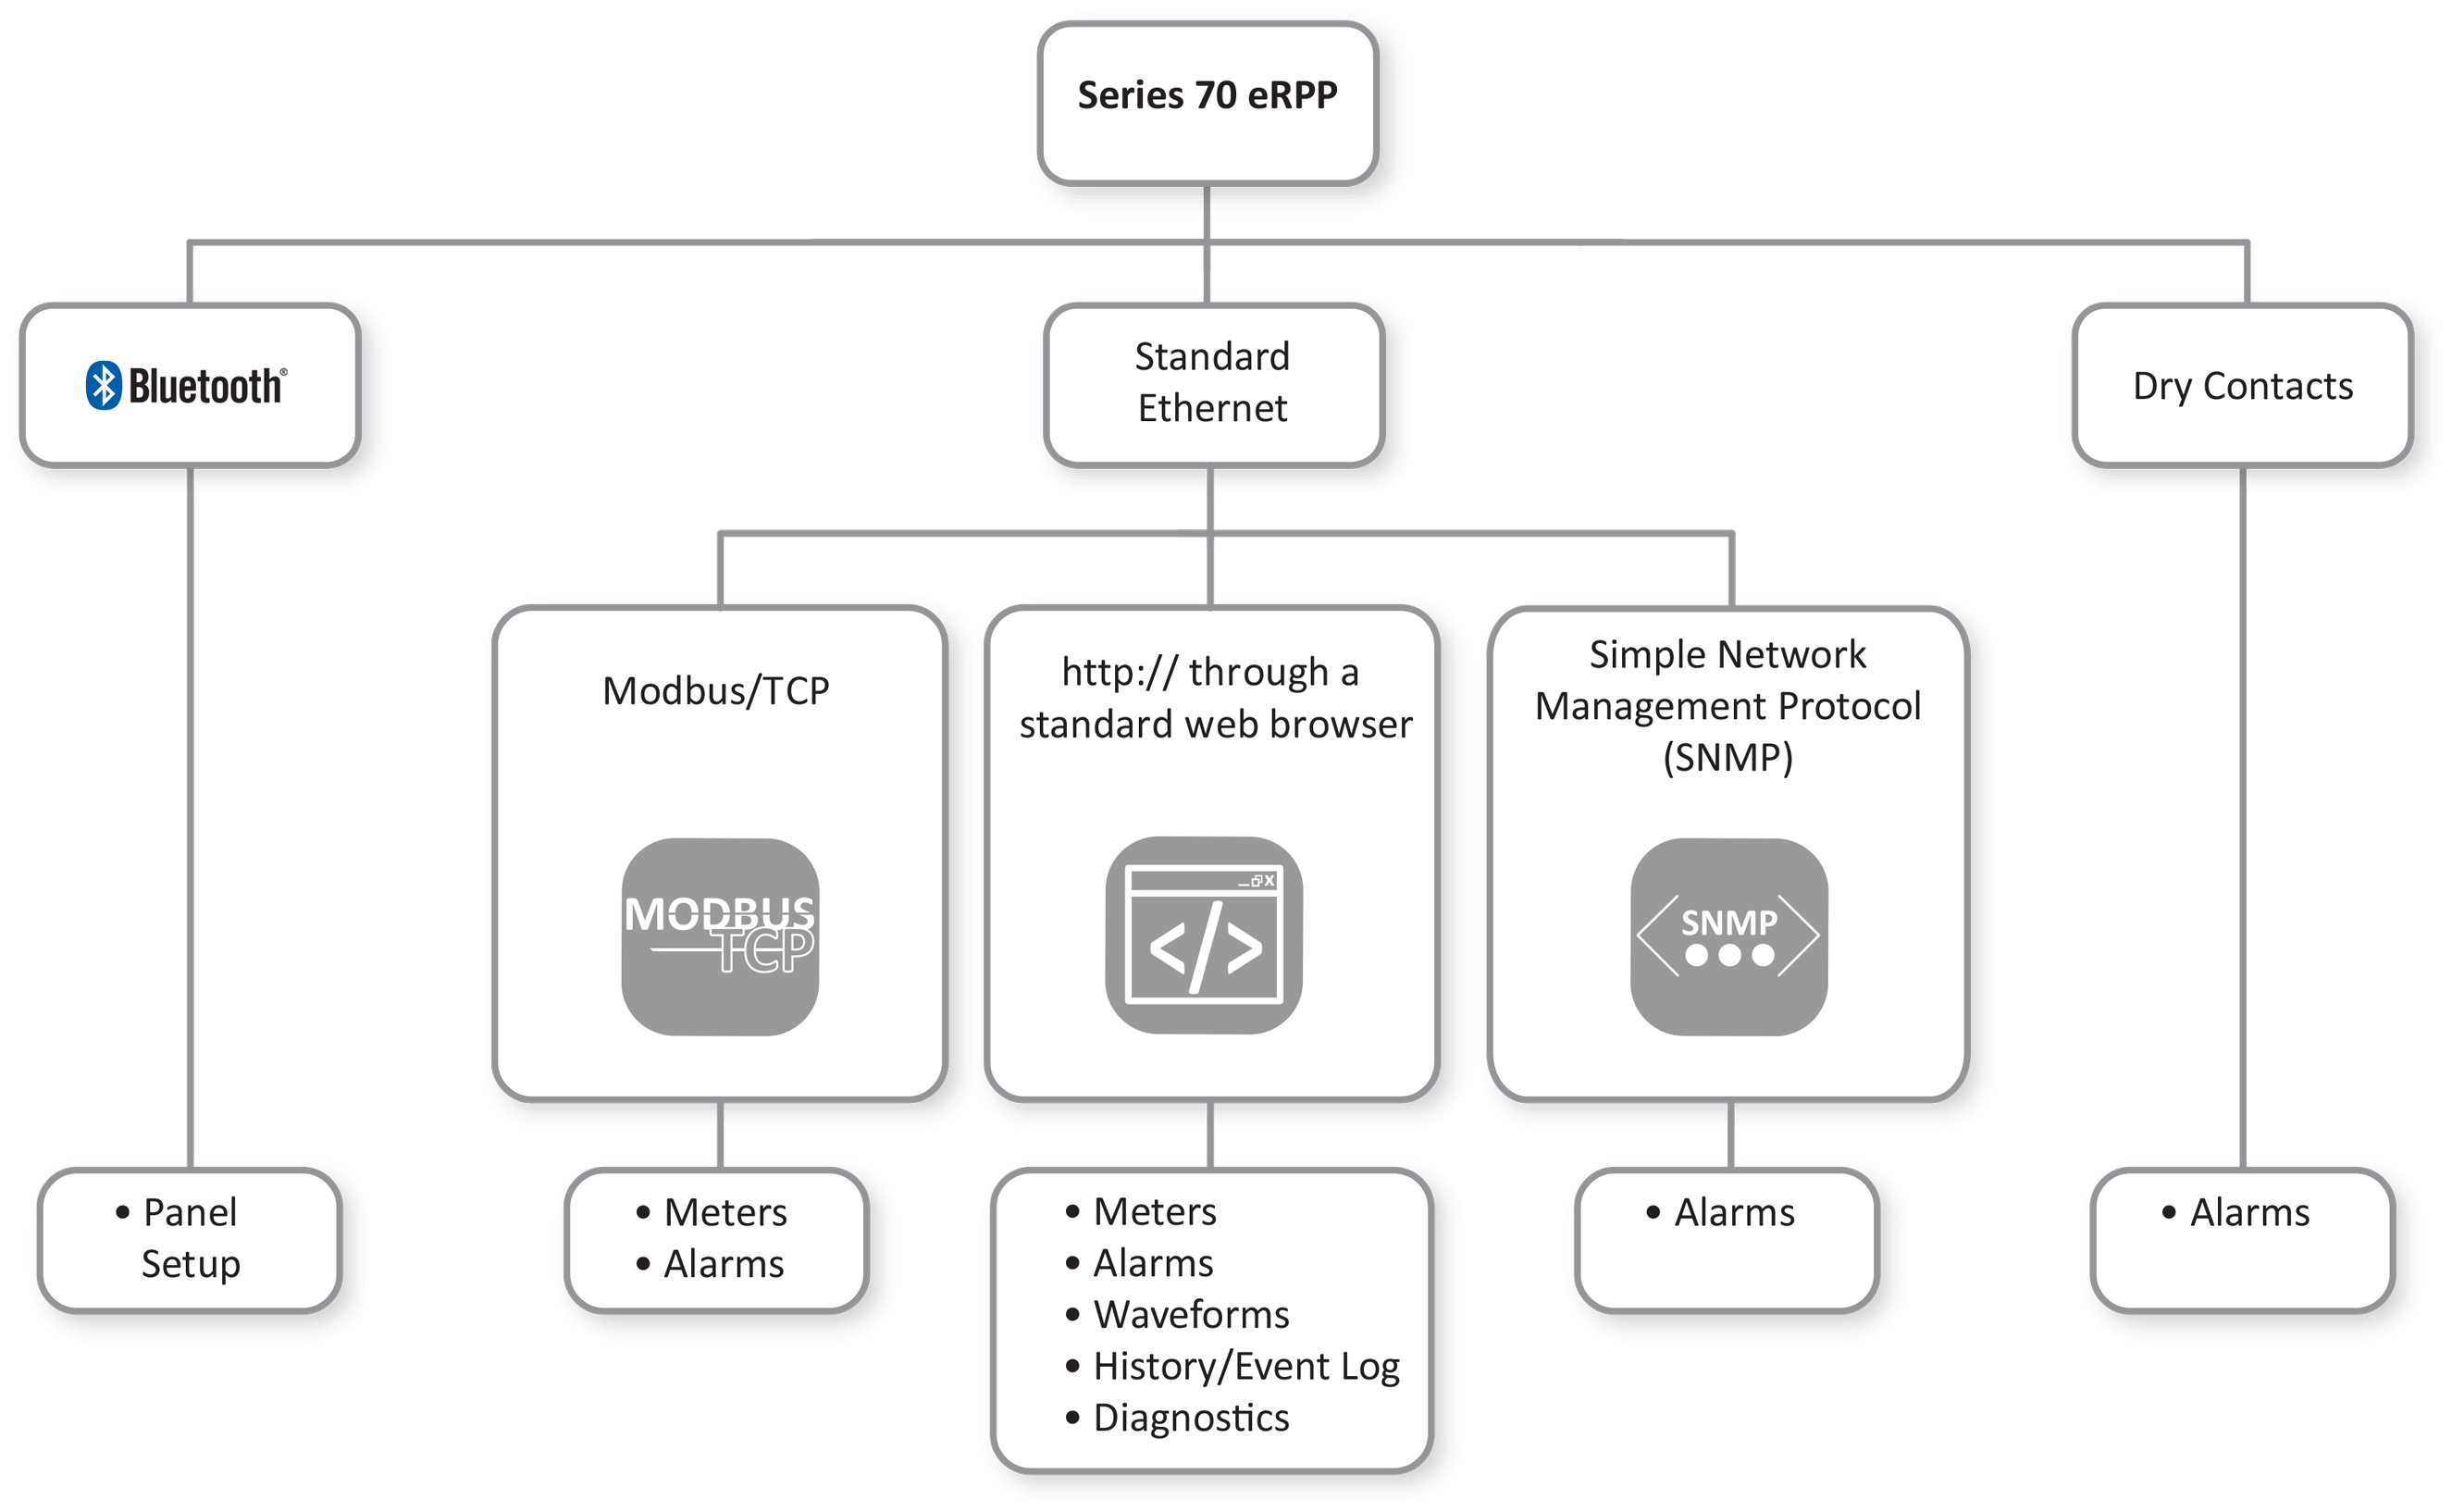 eRPP-SL1 Connectivity